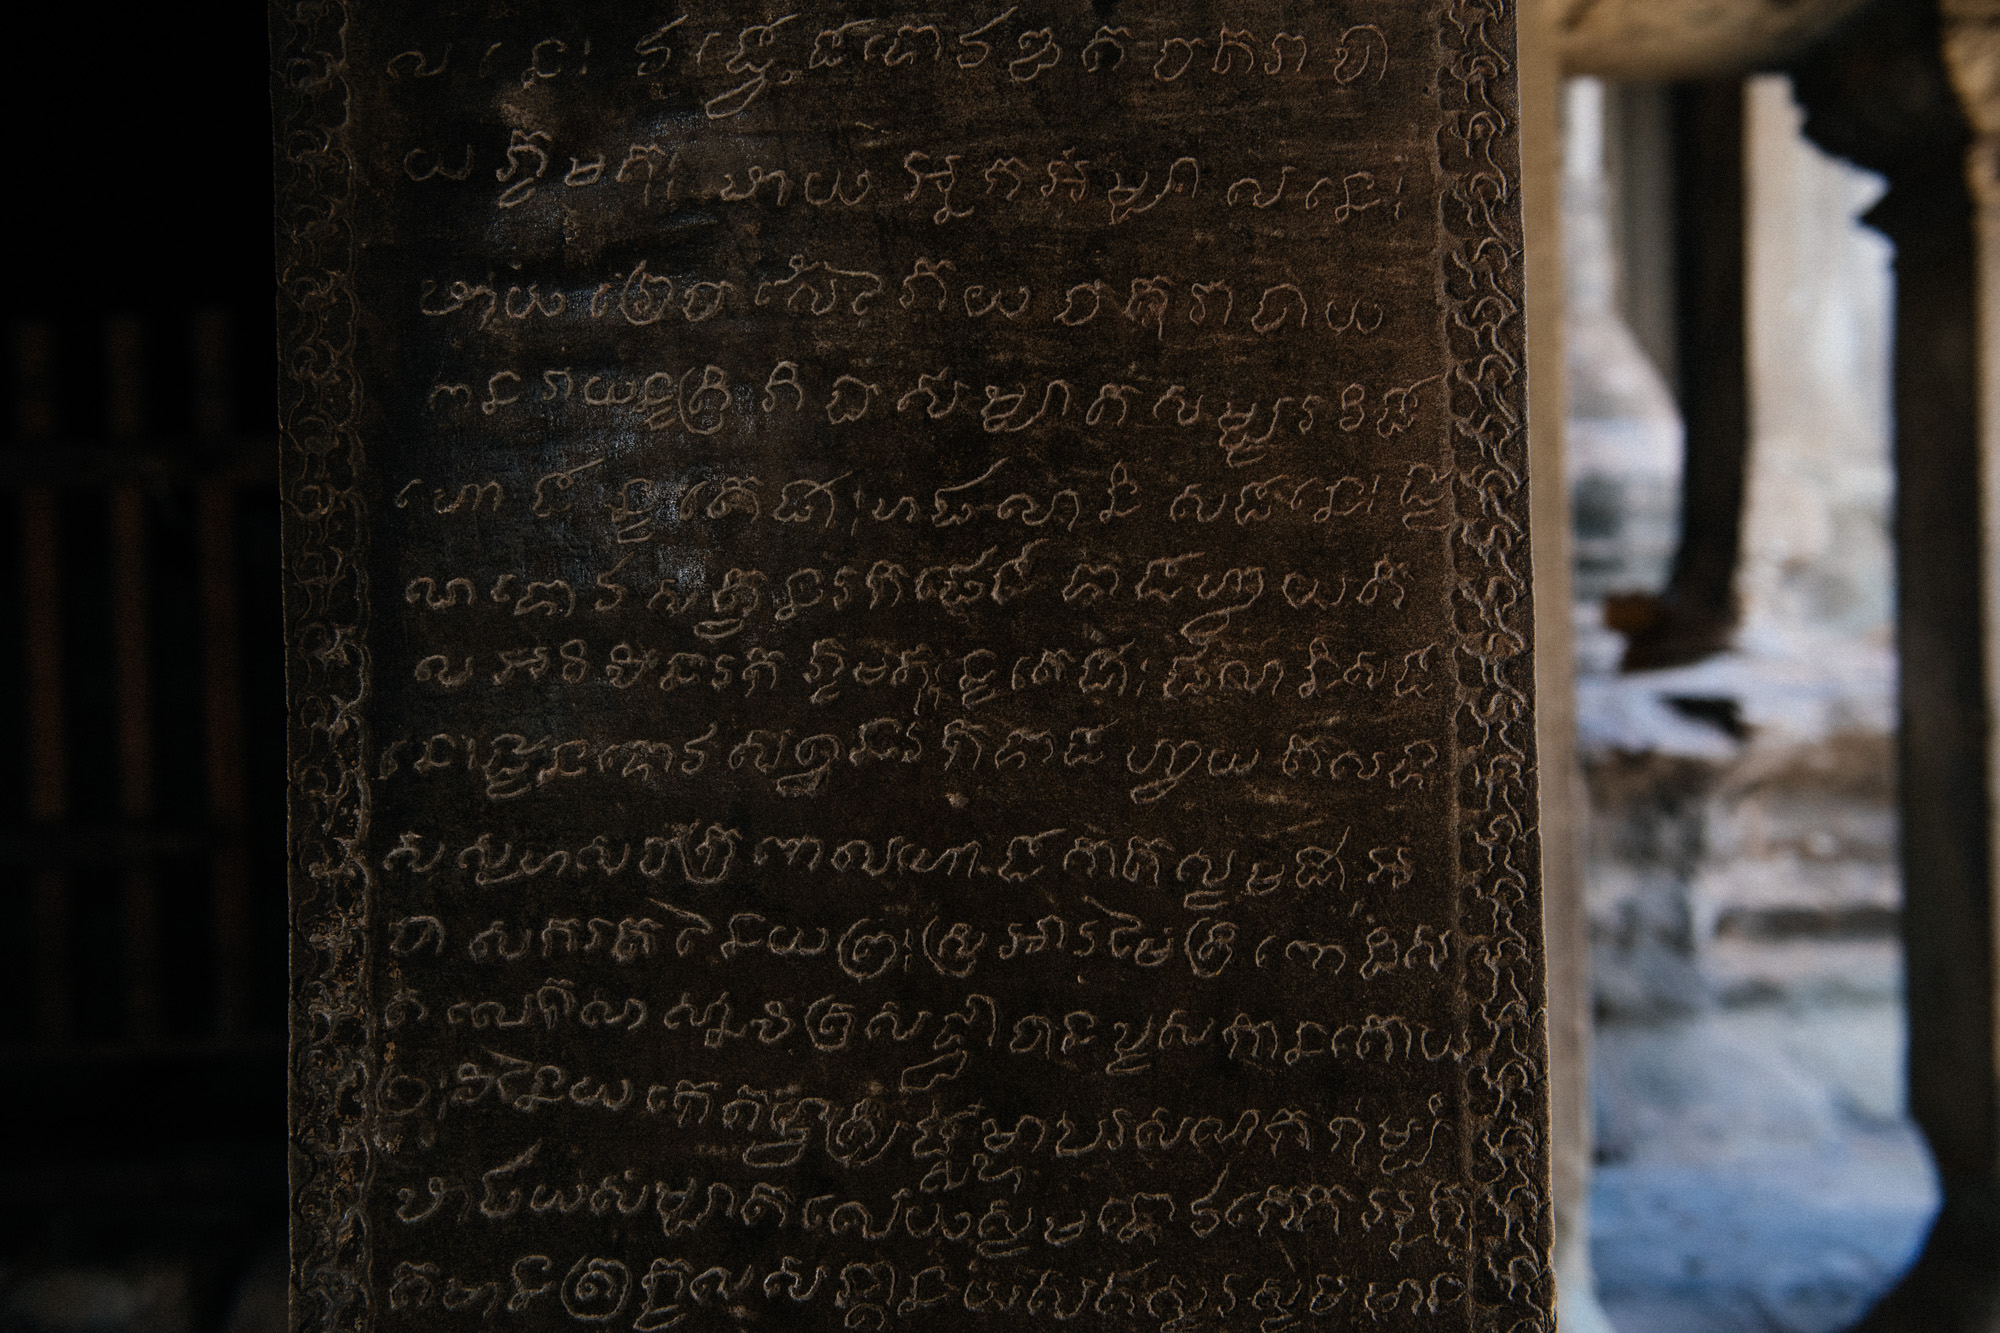 Inscriptions on the columns were added later and were written in either Sanskrit or ancient Khmer.